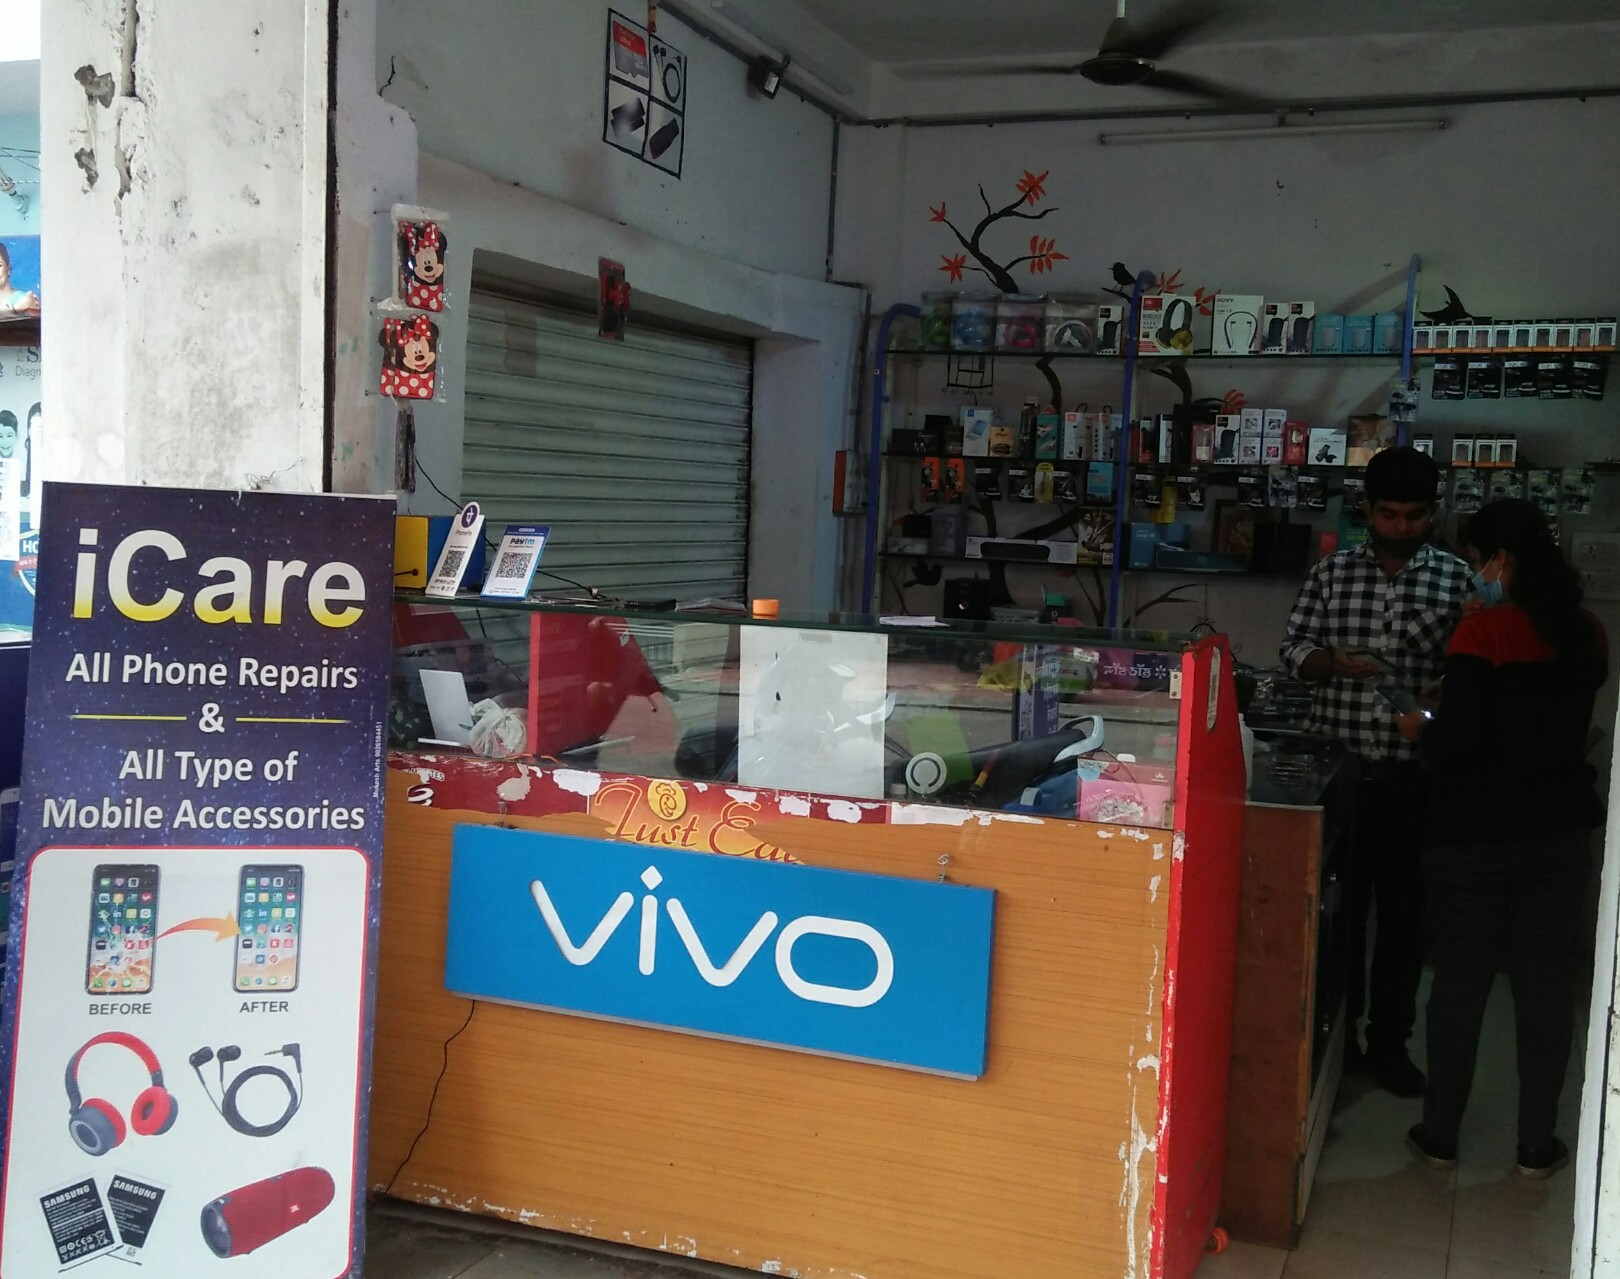 I care mobile ripyar and accessories